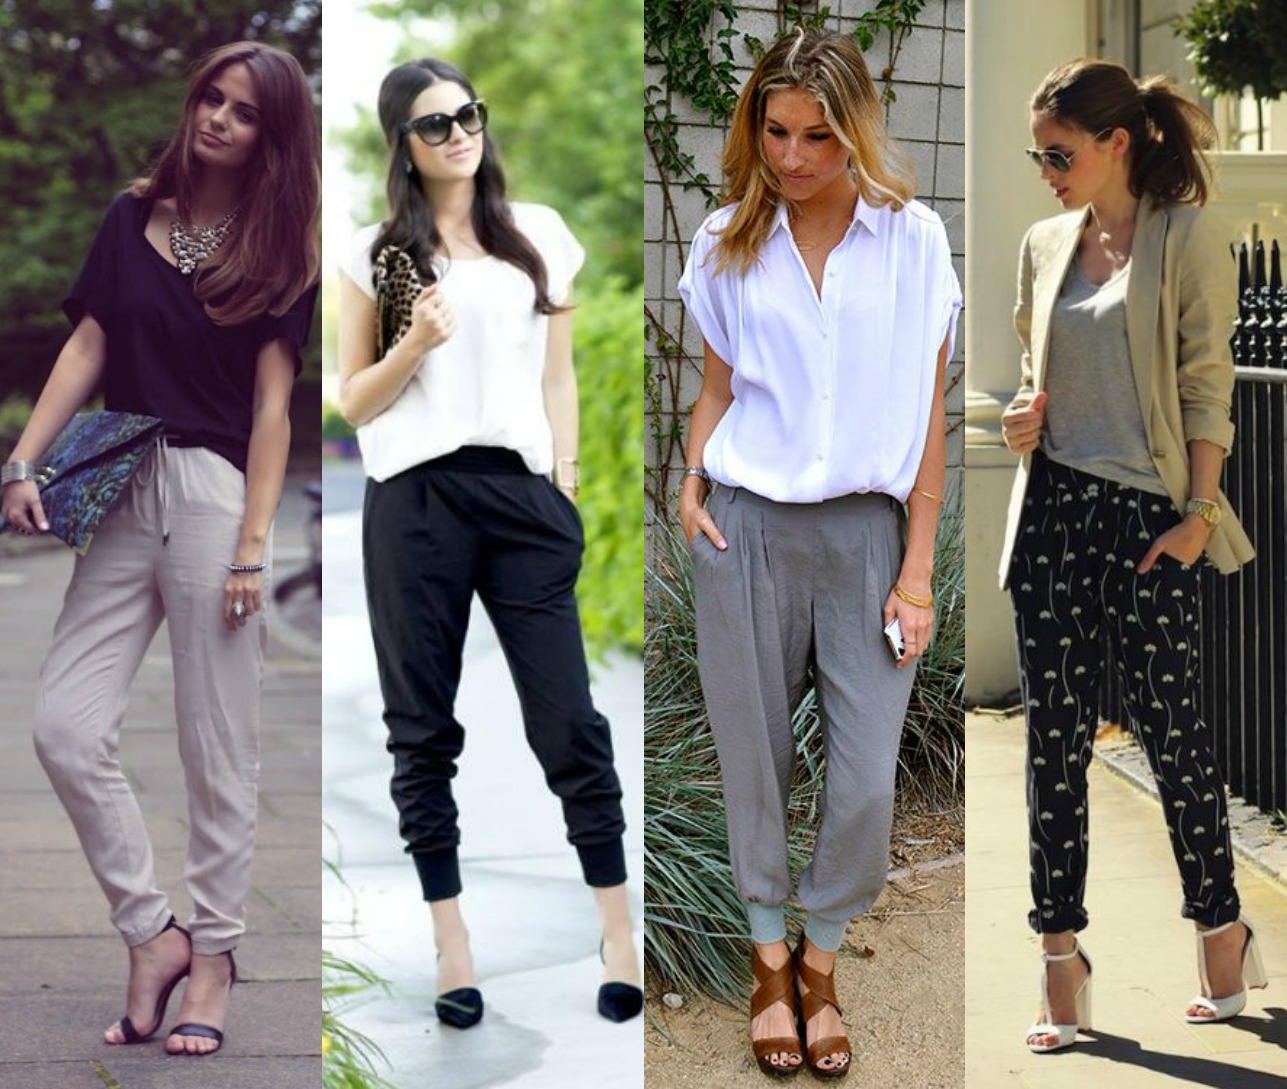 3. Slouchy Harem Trousers   Harem pants are super versatile soft pants, and the drop crotch gives them an edgy look. Very comfortable, and a version of sweatpants that you can actually wear outside. Great for business, brunch, or a night out on the town, with strategic shoe choices. Try with a more fitted top, like a silk halter.